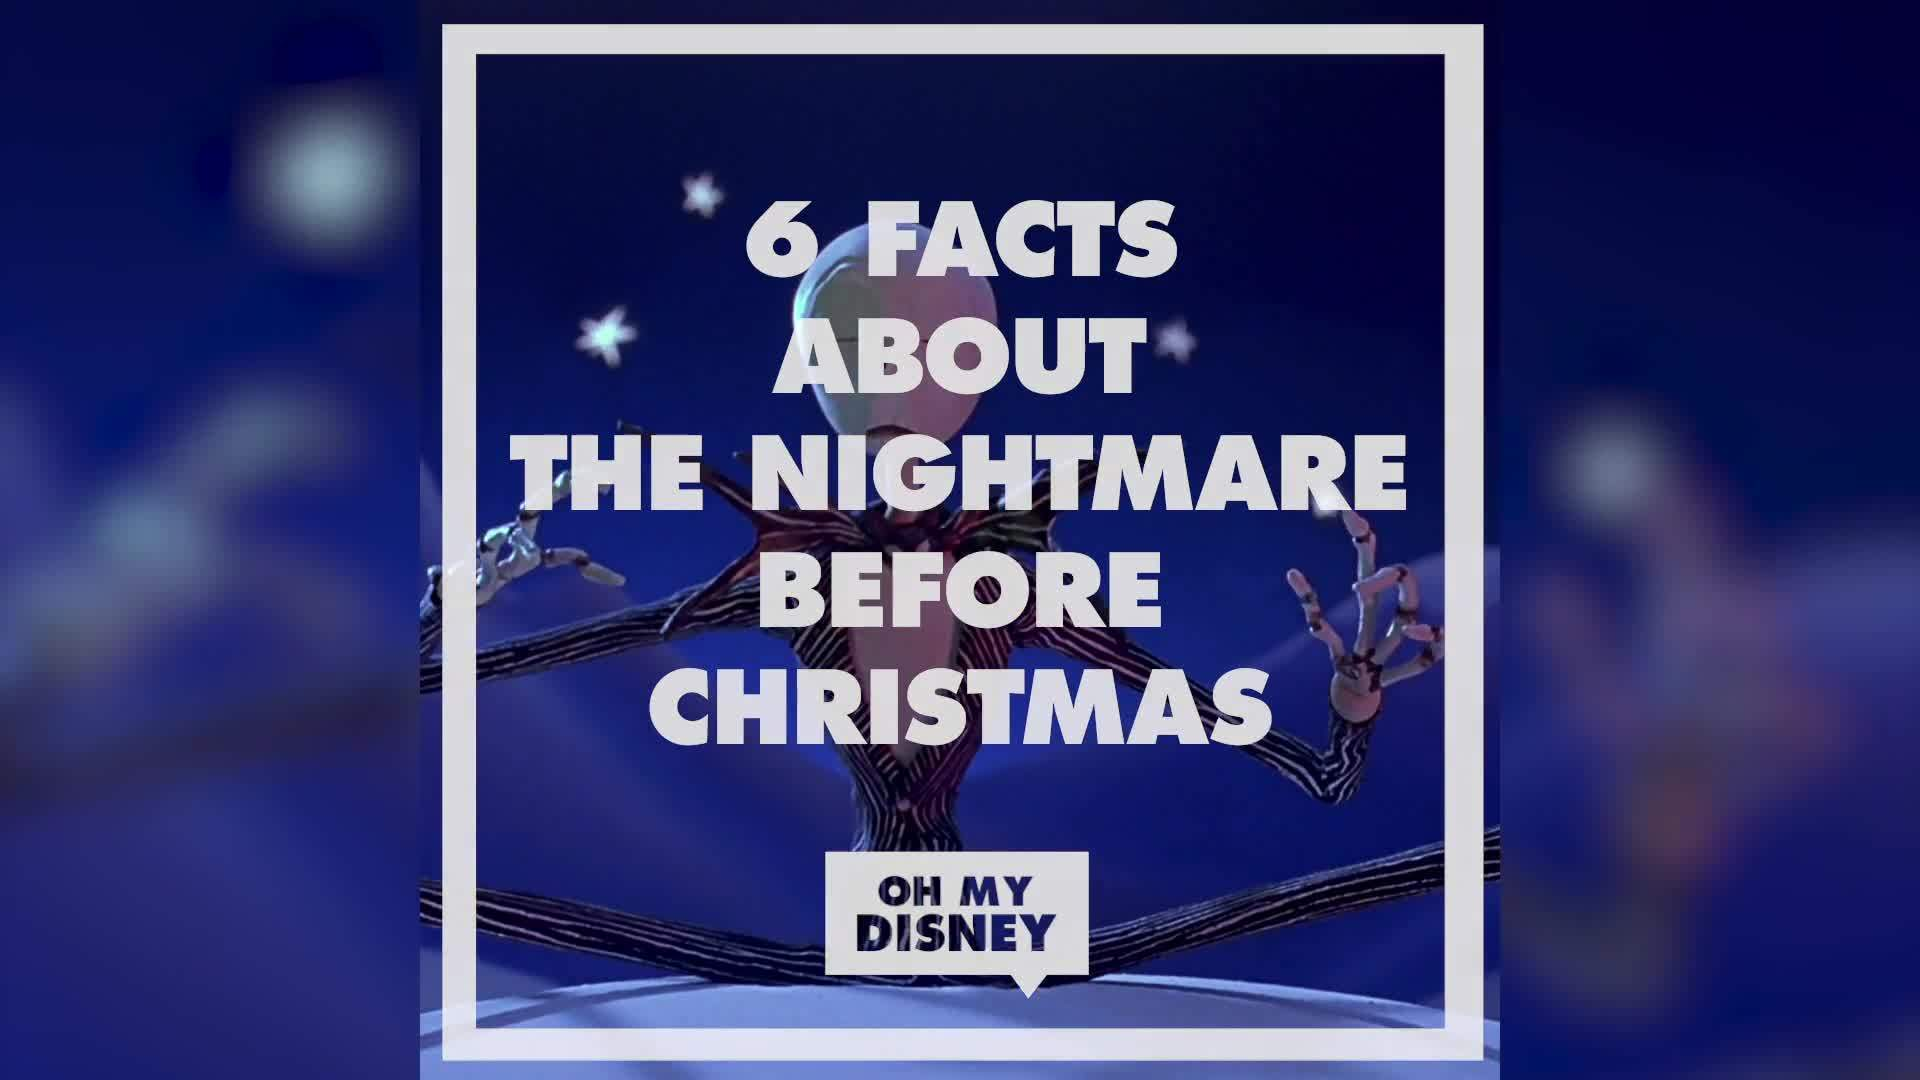 The Nightmare Before Christmas Facts | Oh My Disney